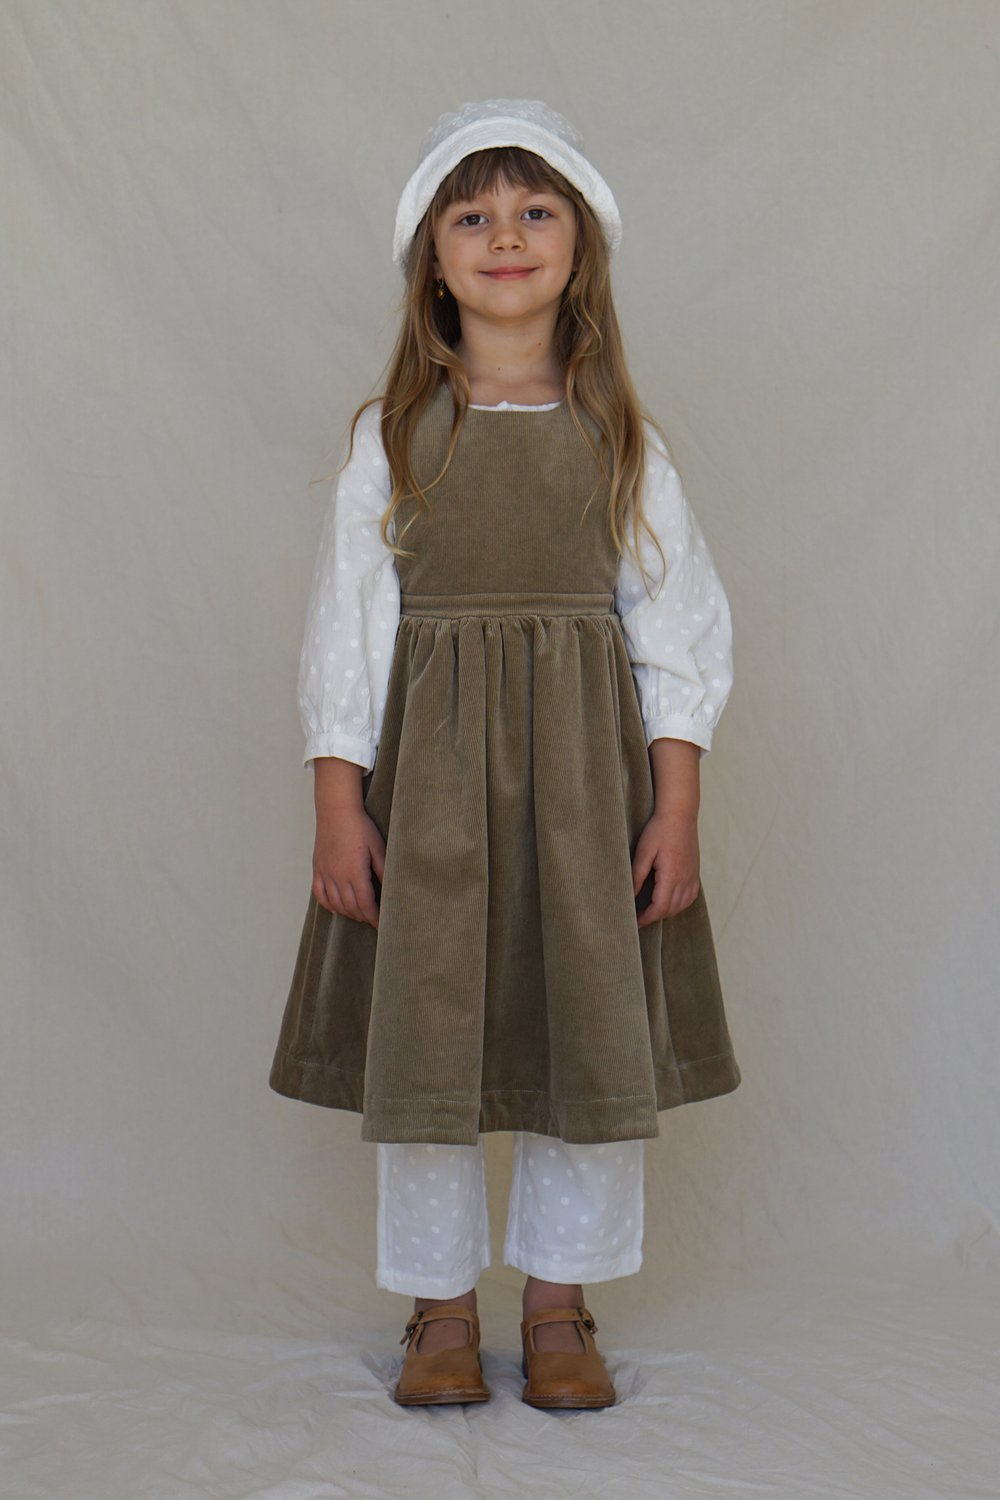 Children_of_the_Wild-Australia House of Paloma Juliette Pinafore ~ Caper Cord, beautifully lined in the softest pure cotton.